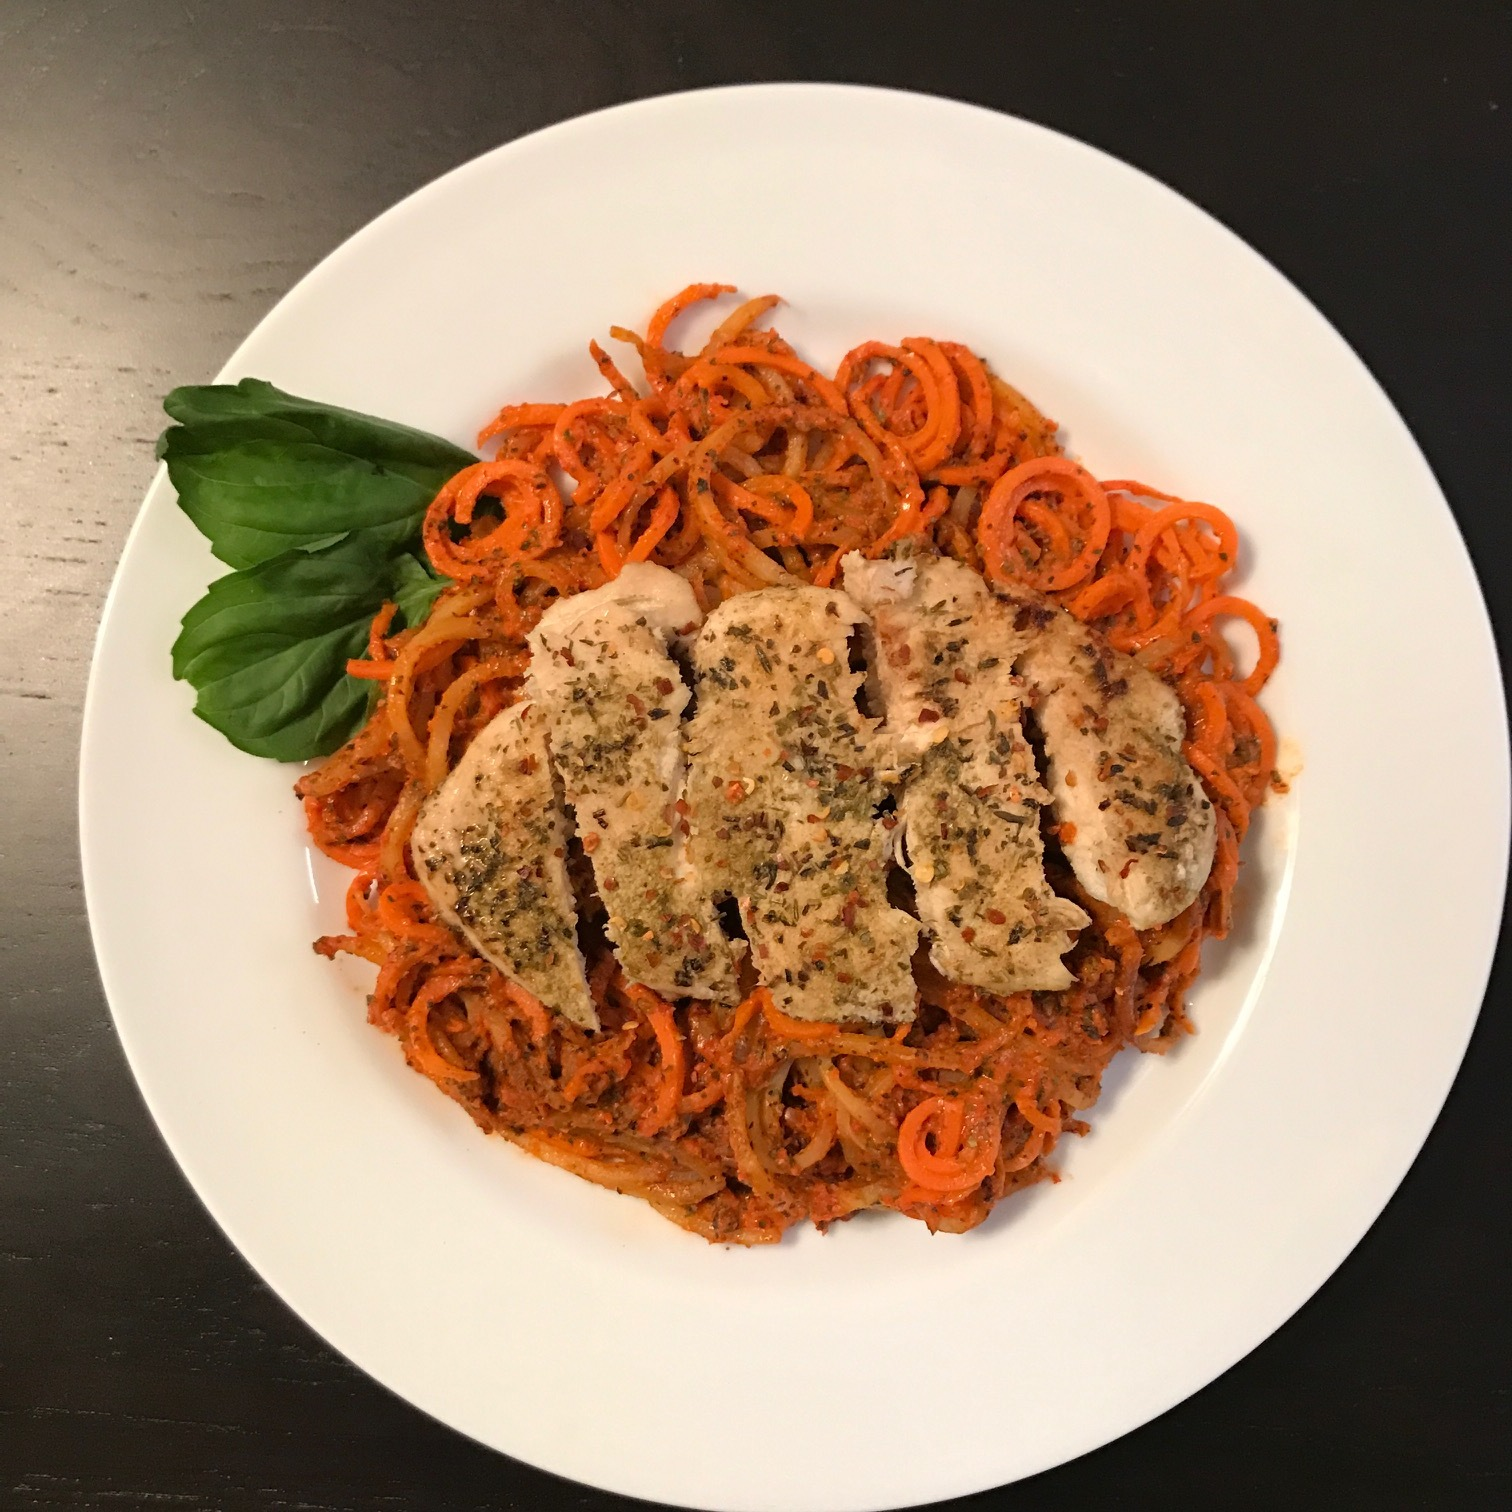 Roasted Red Pepper & Basil Pasta with Chicken with Spiralized Sweet Potato - Paleo & Whole 30